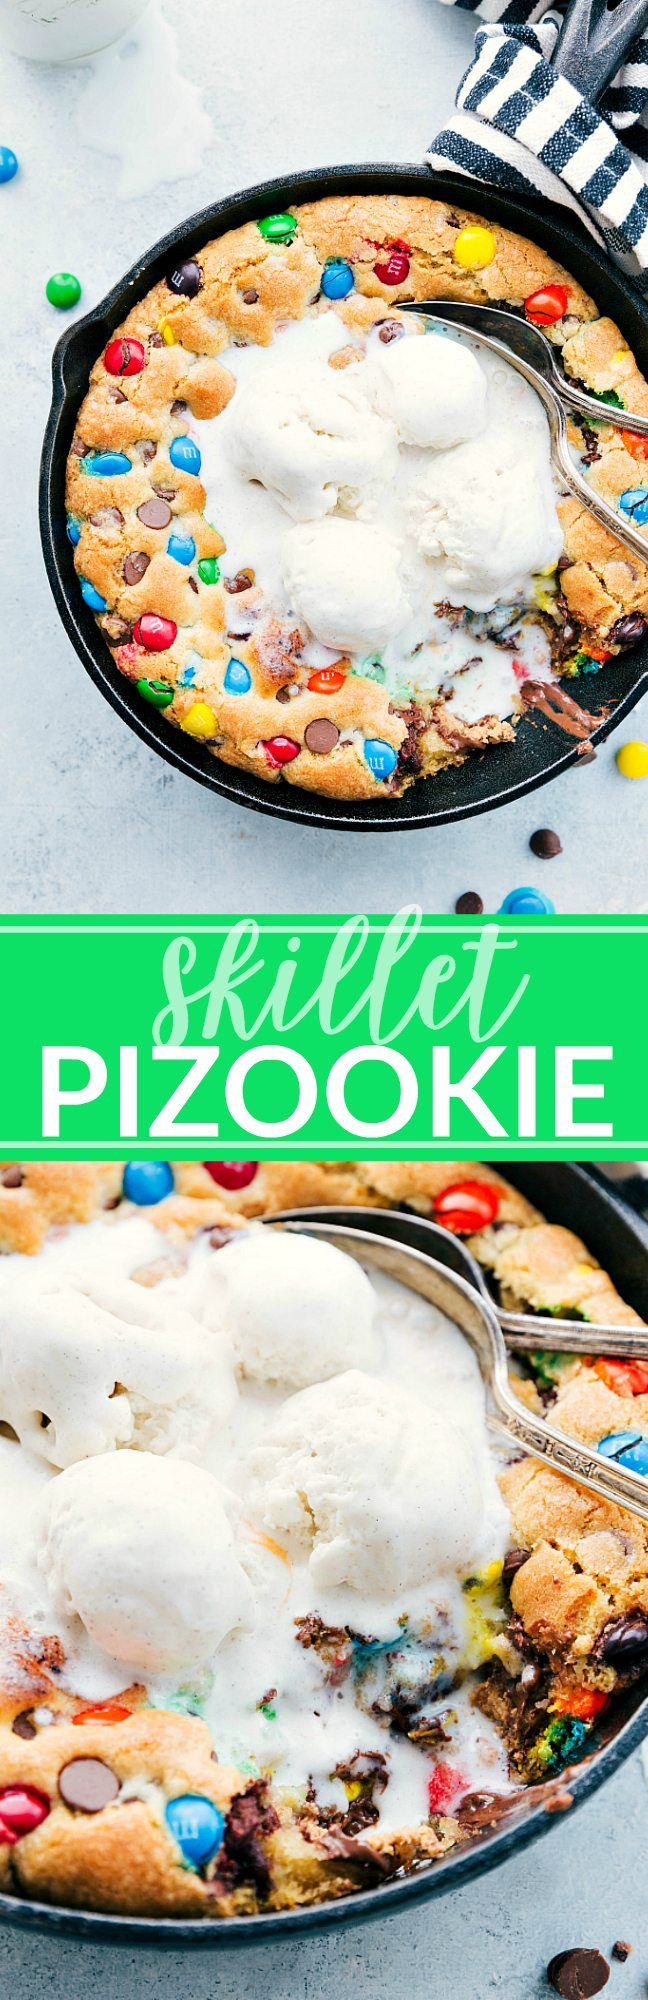 The ultimate BEST EVER PIZOOKIE! This skillet cookie is so easy to make and delicious! | chelseasmessyapron.com